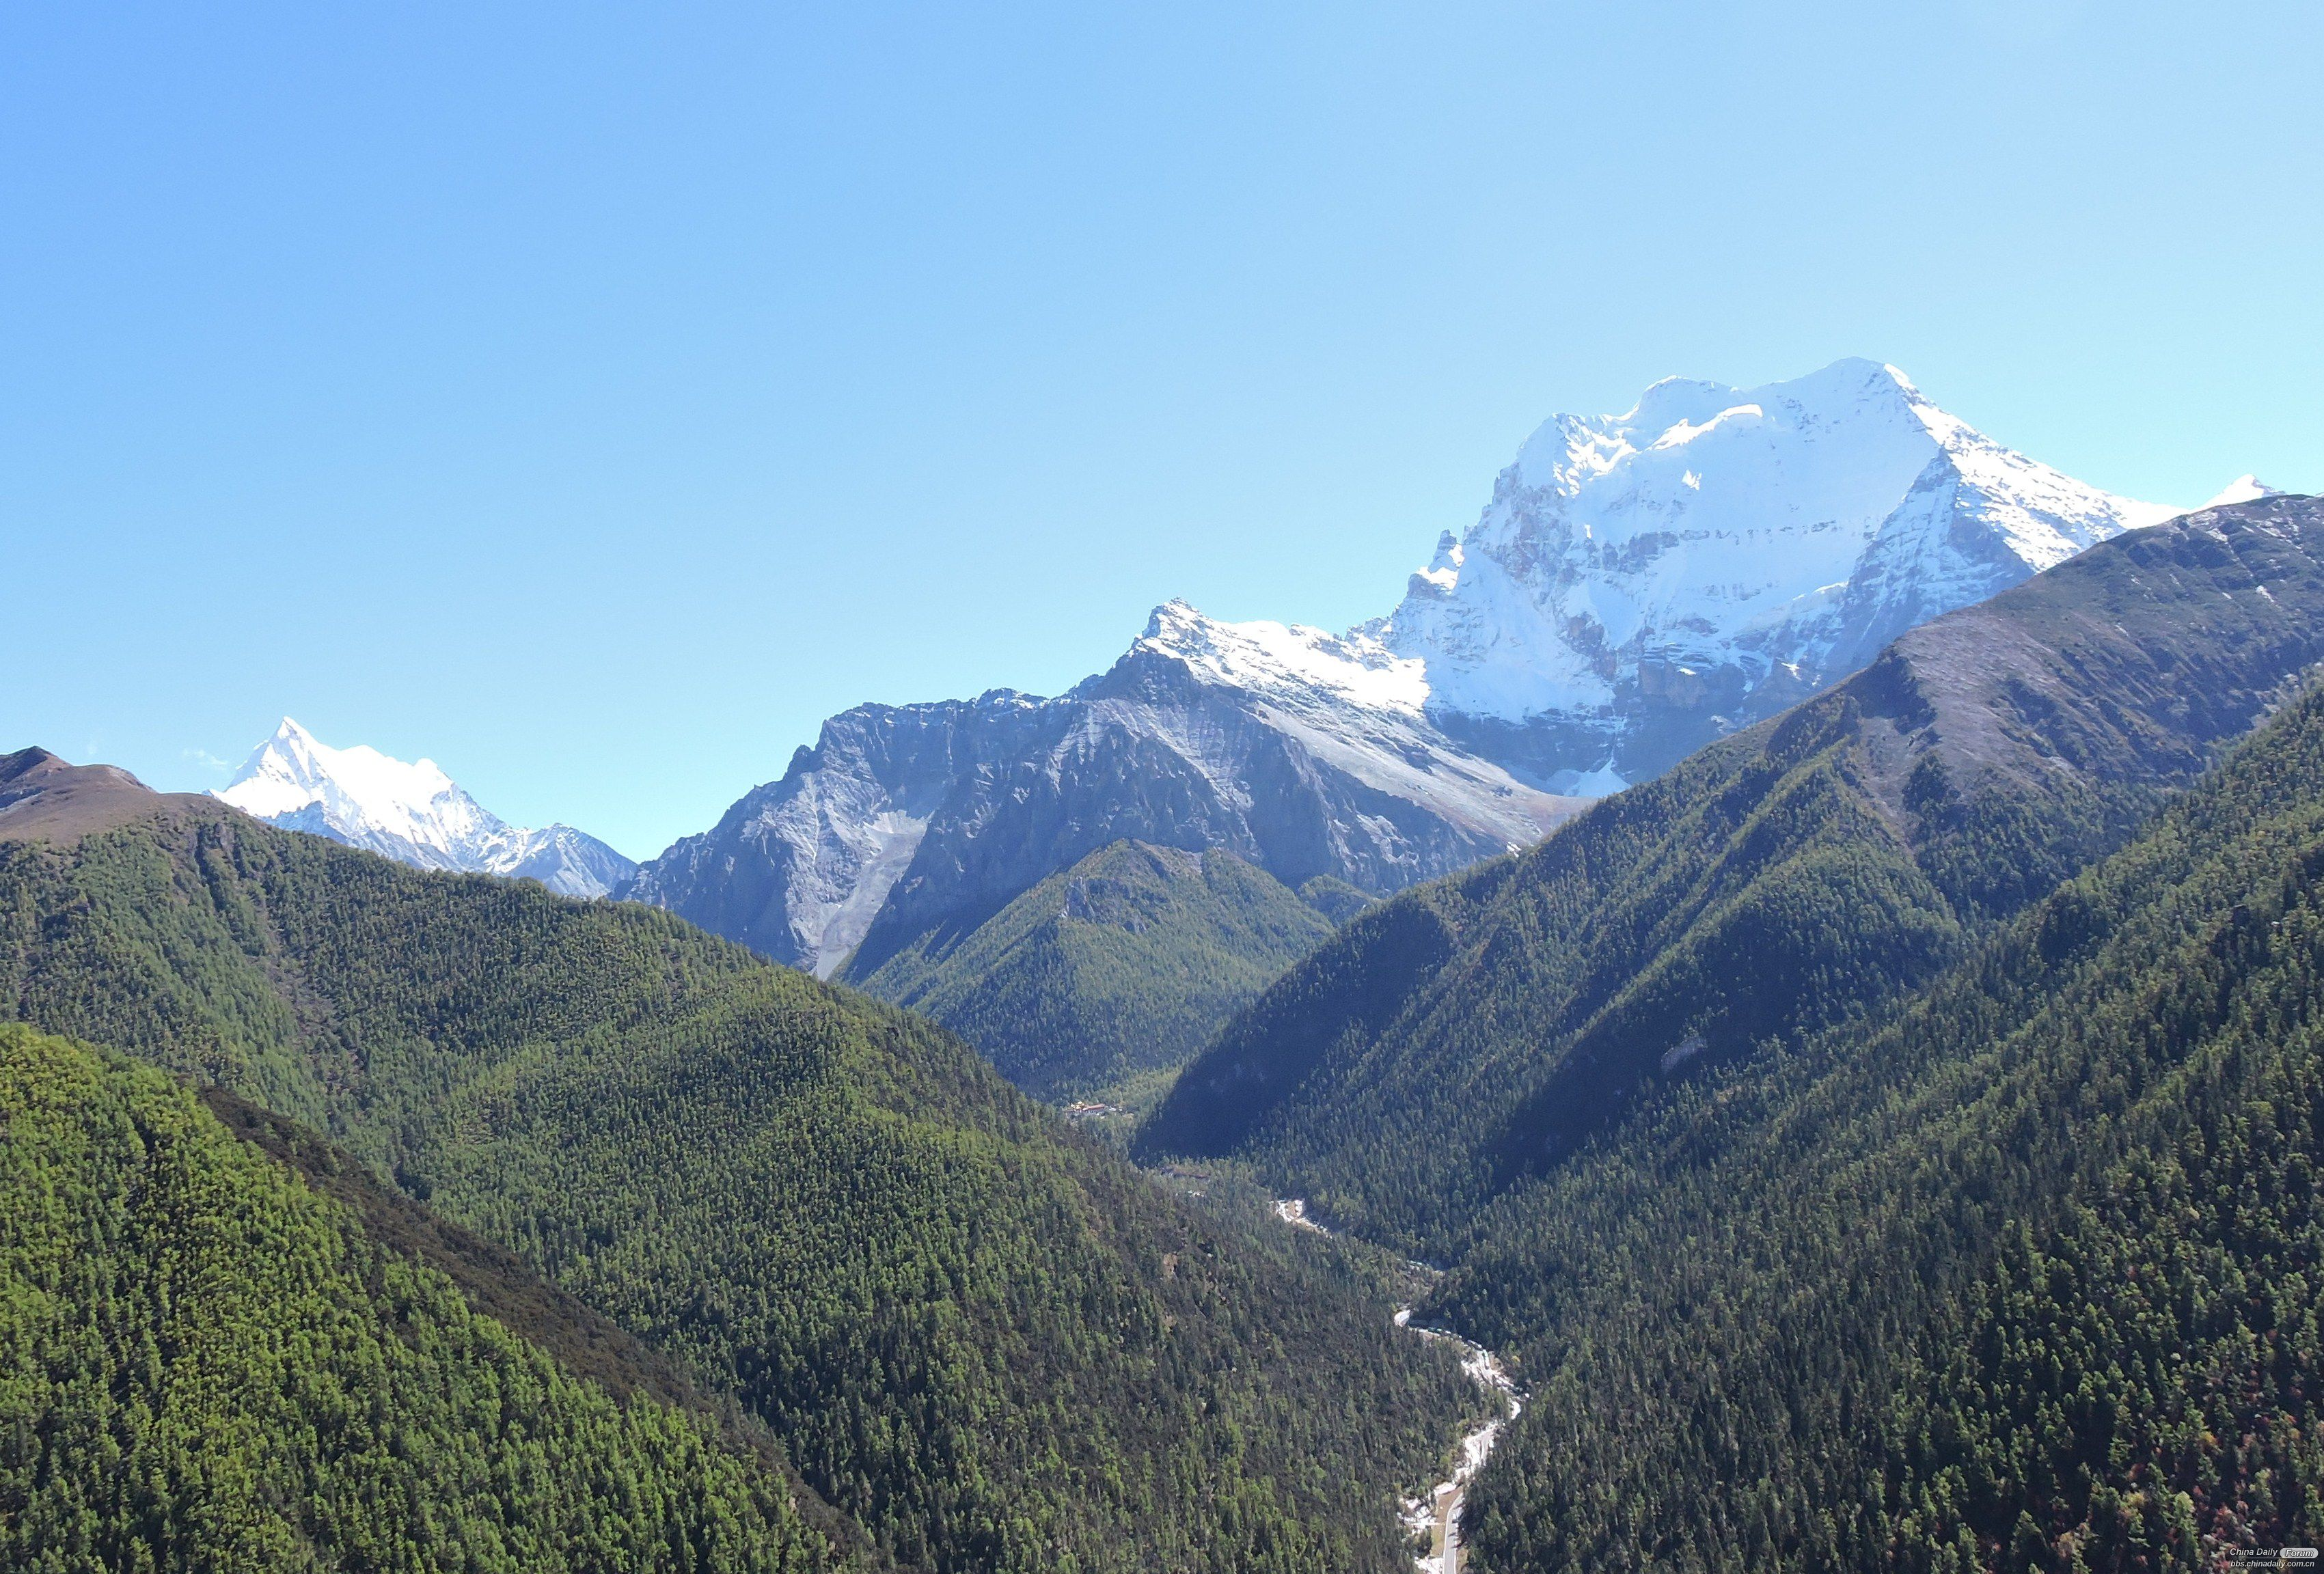 Mt. Chana Dorjie and Chenresig and a valley with lush vegetation even above 4,000m altitude